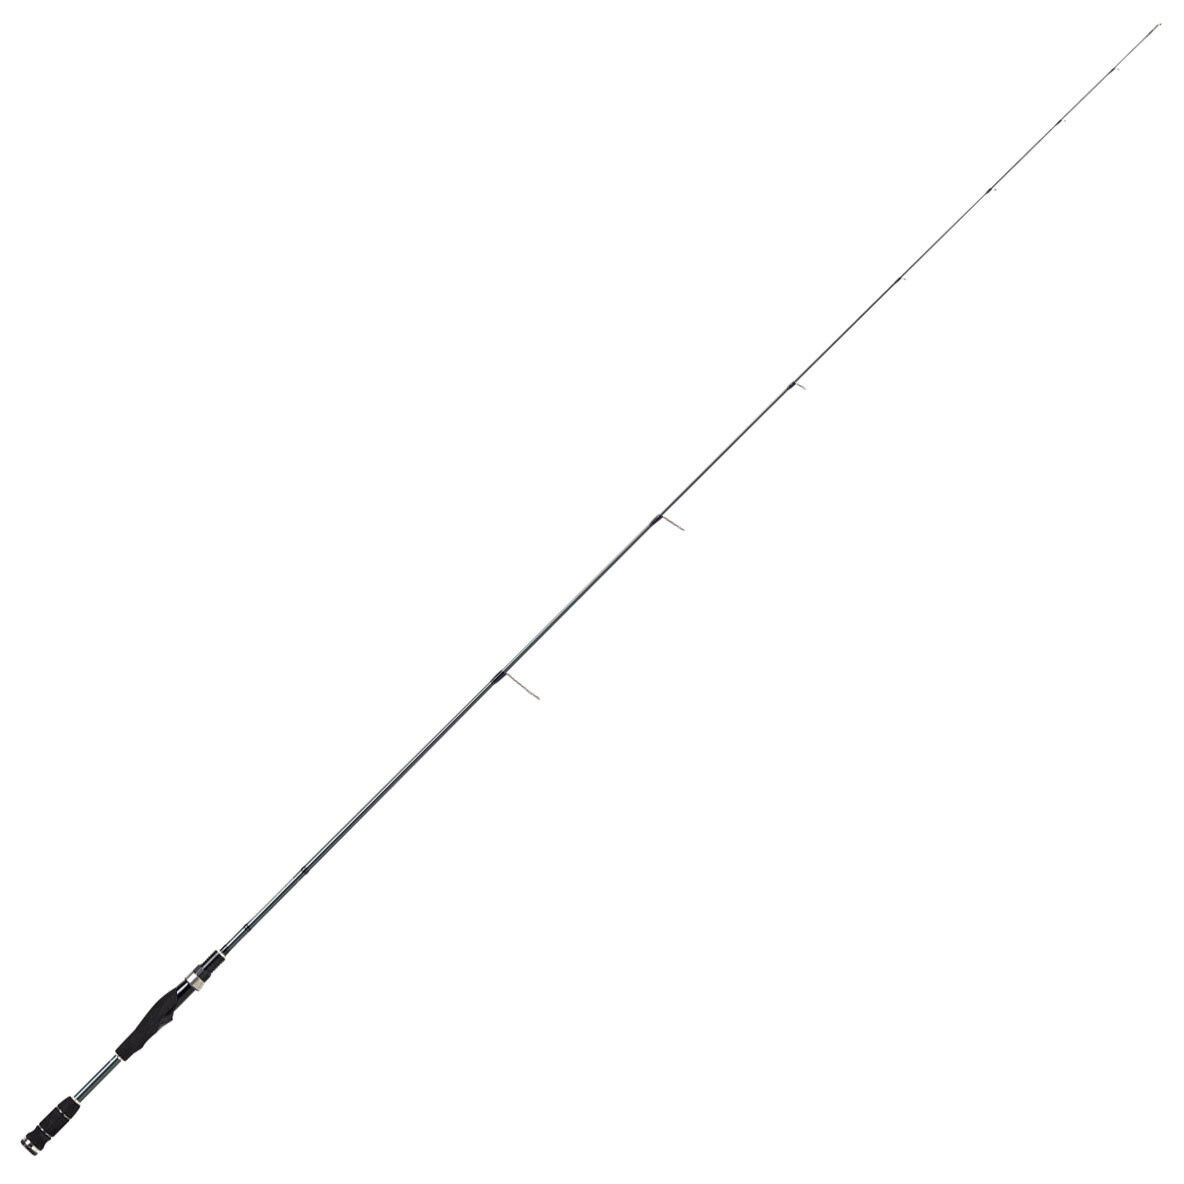 12605700 Canna Rapture Finezza RV 1,94 m 1814 Oz Pesca Spinning Finesse RNG